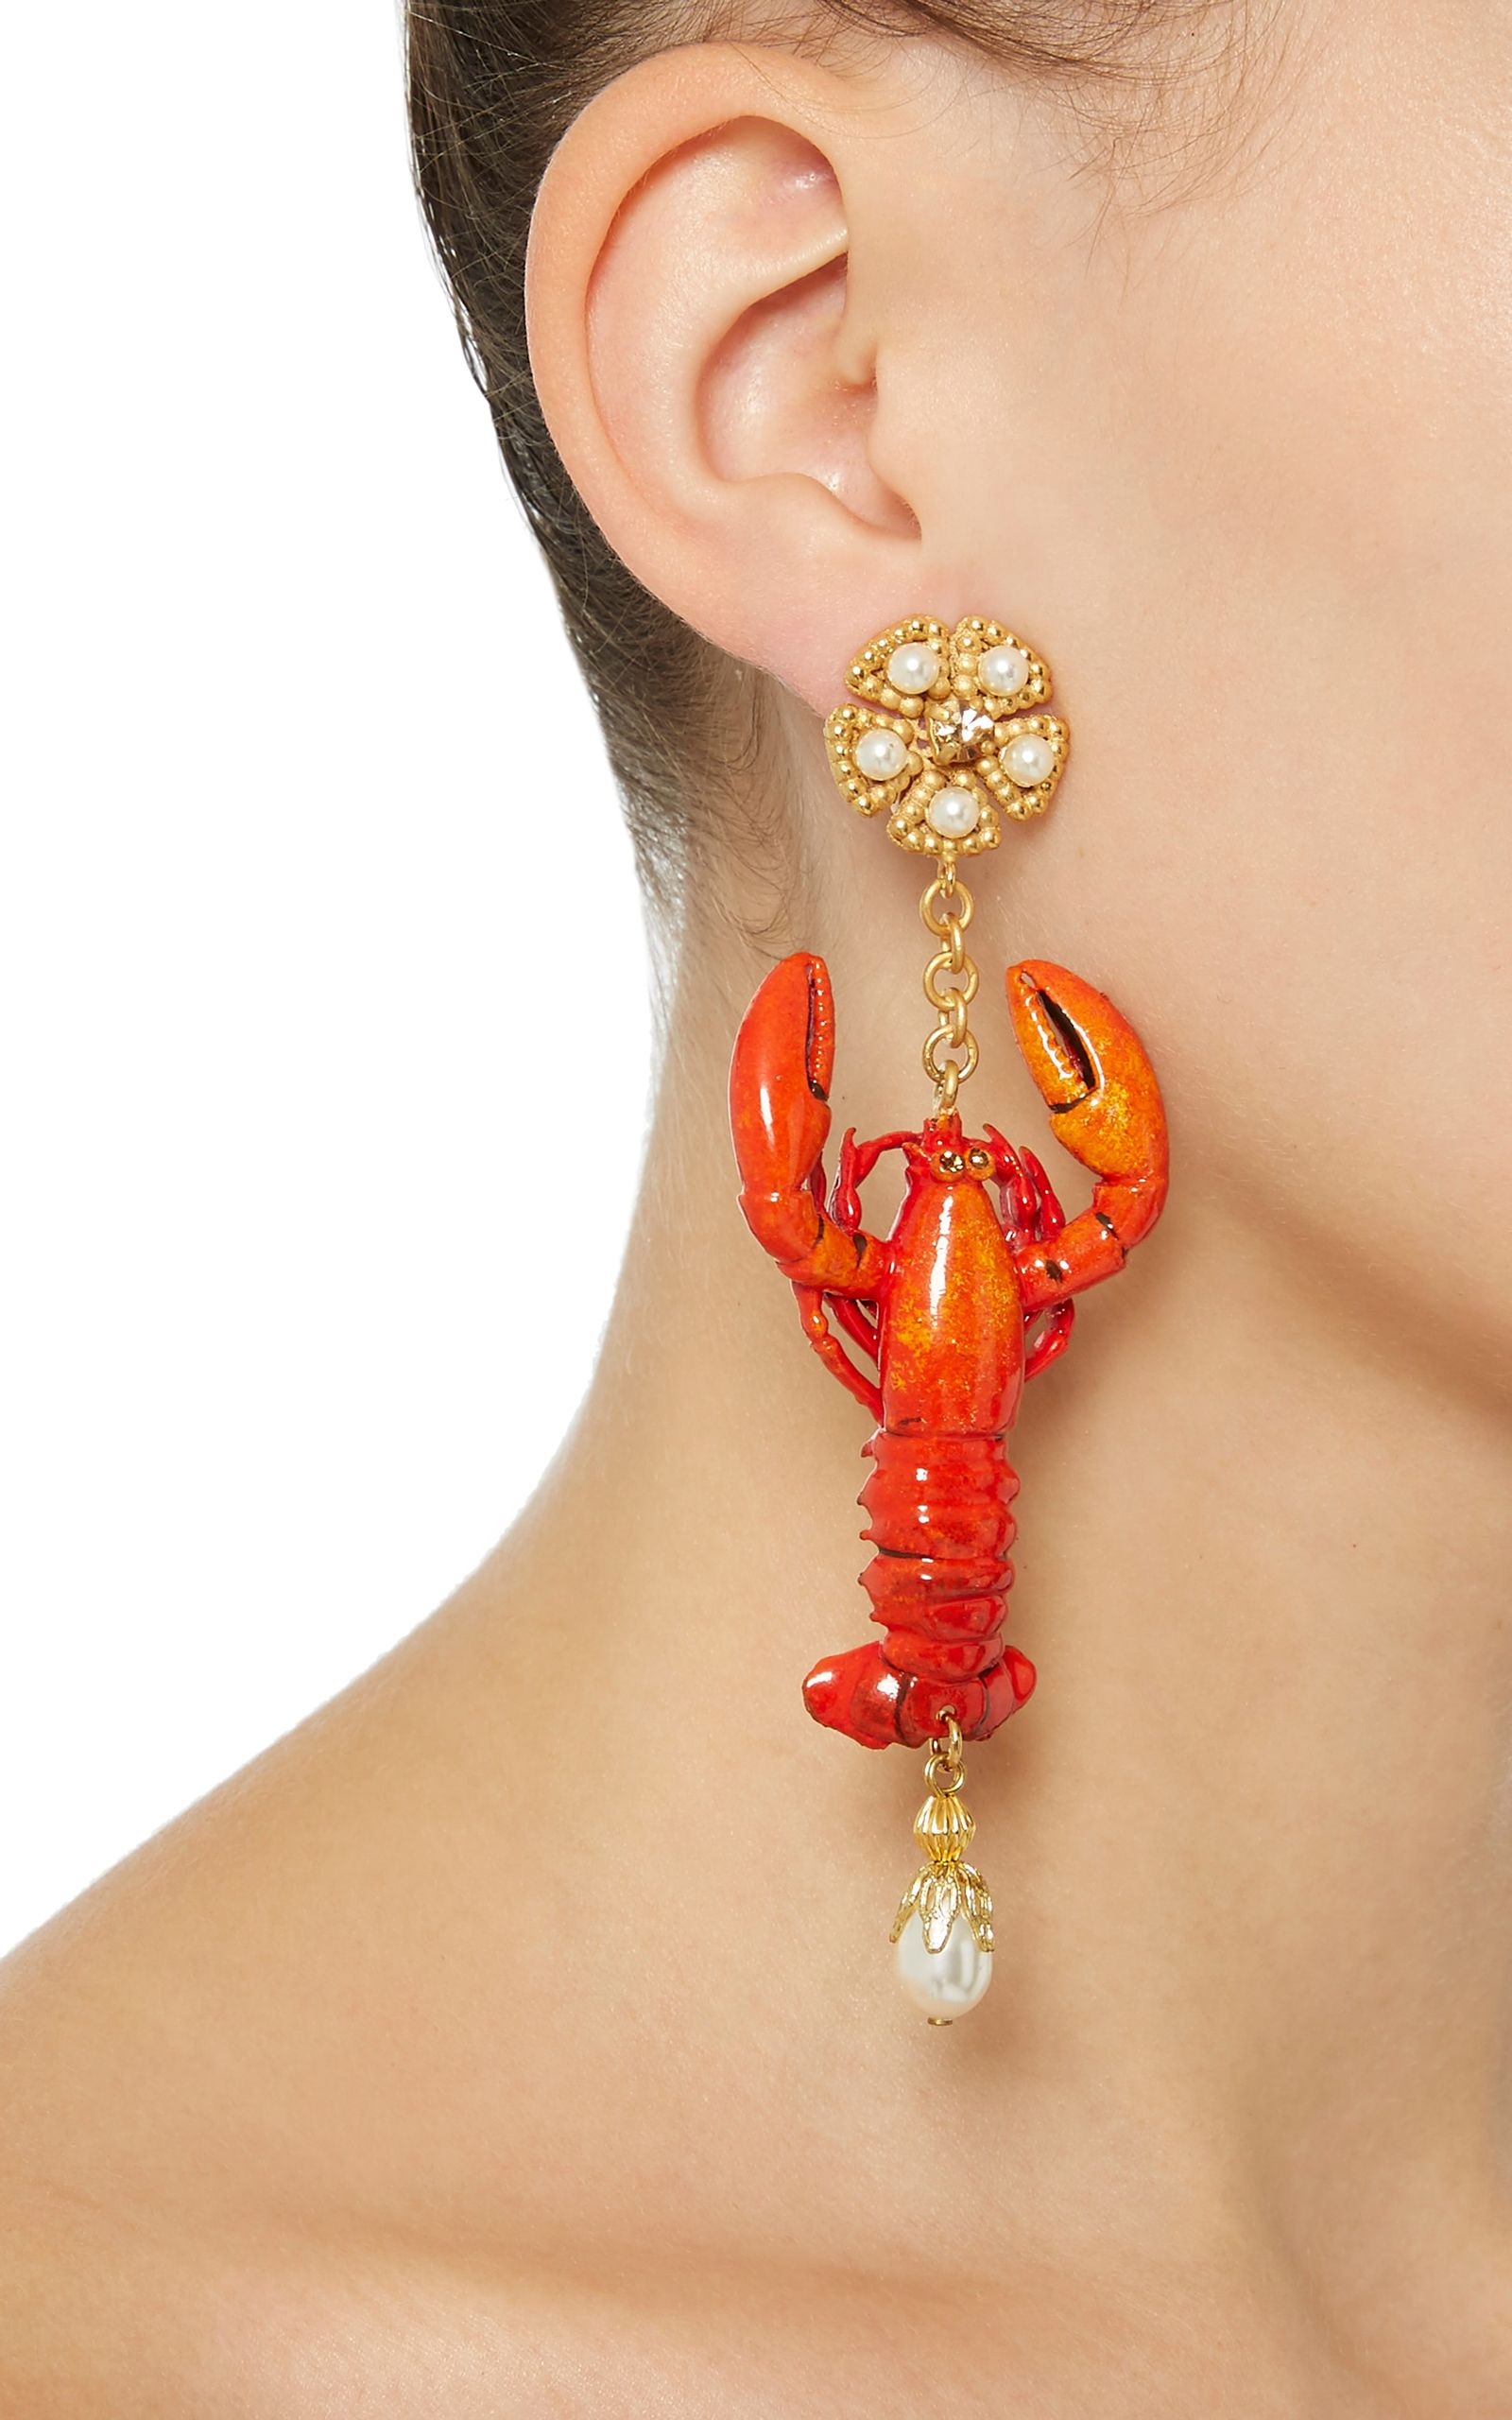 dolce gabbana lobster earrings unusual accessories pinterest schmuck. Black Bedroom Furniture Sets. Home Design Ideas